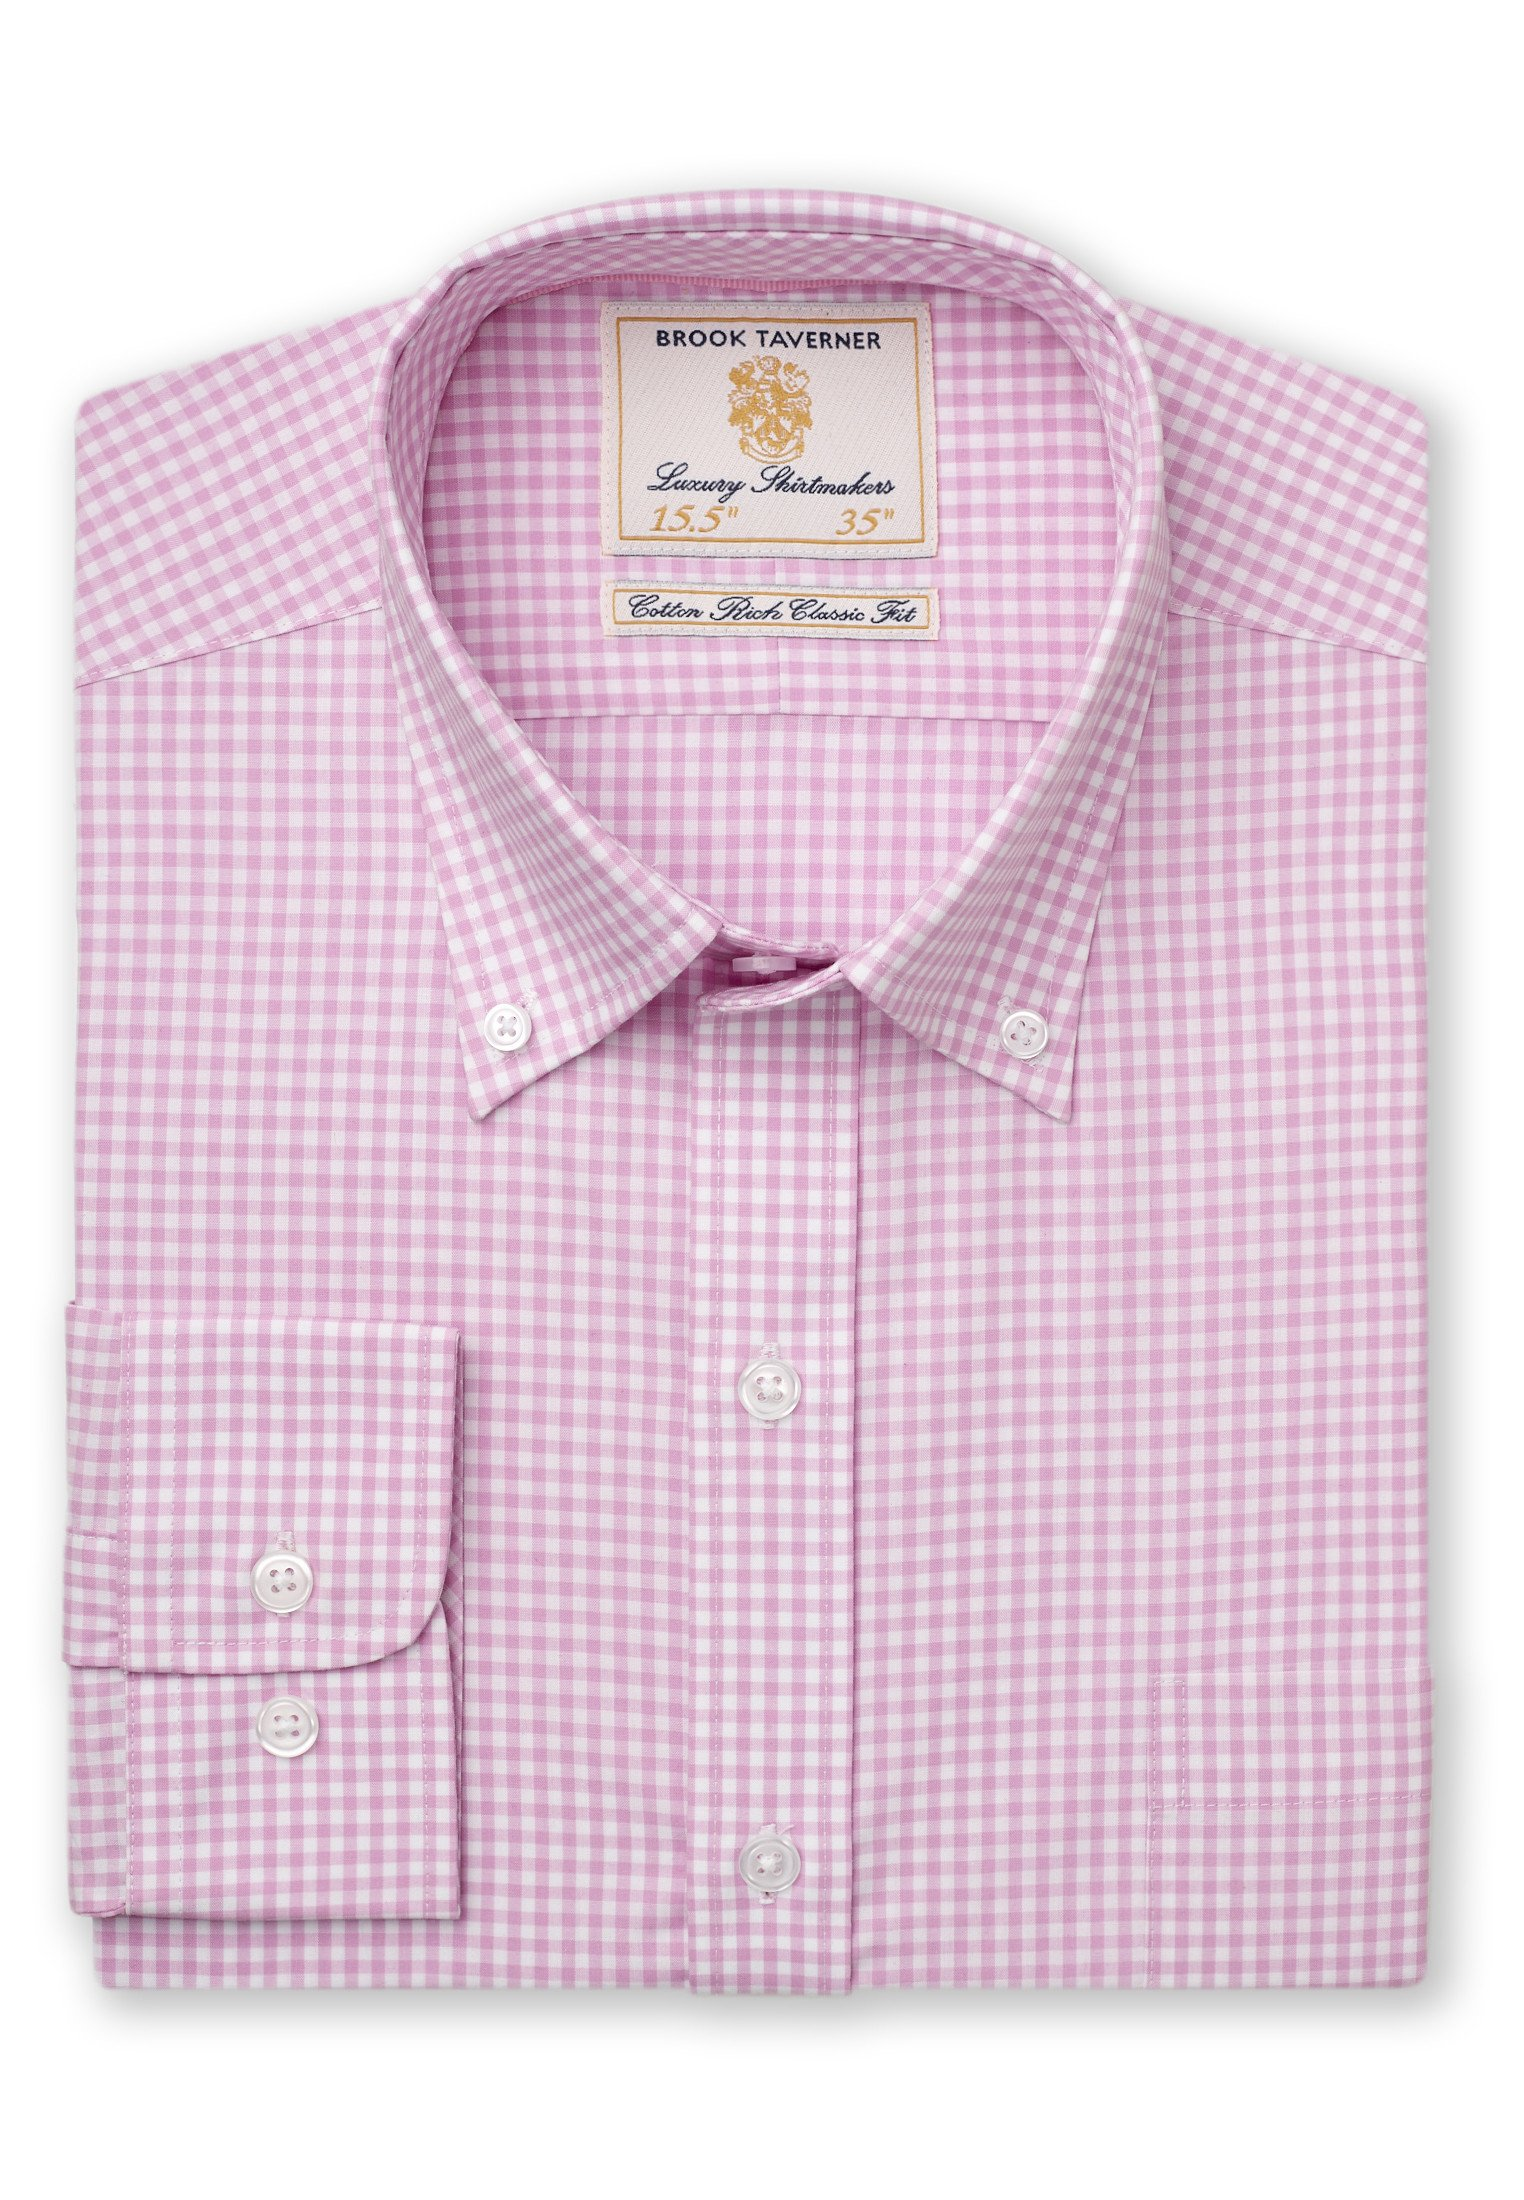 Brook Taverner Gingam Check Long Sleeve shirt in Pink